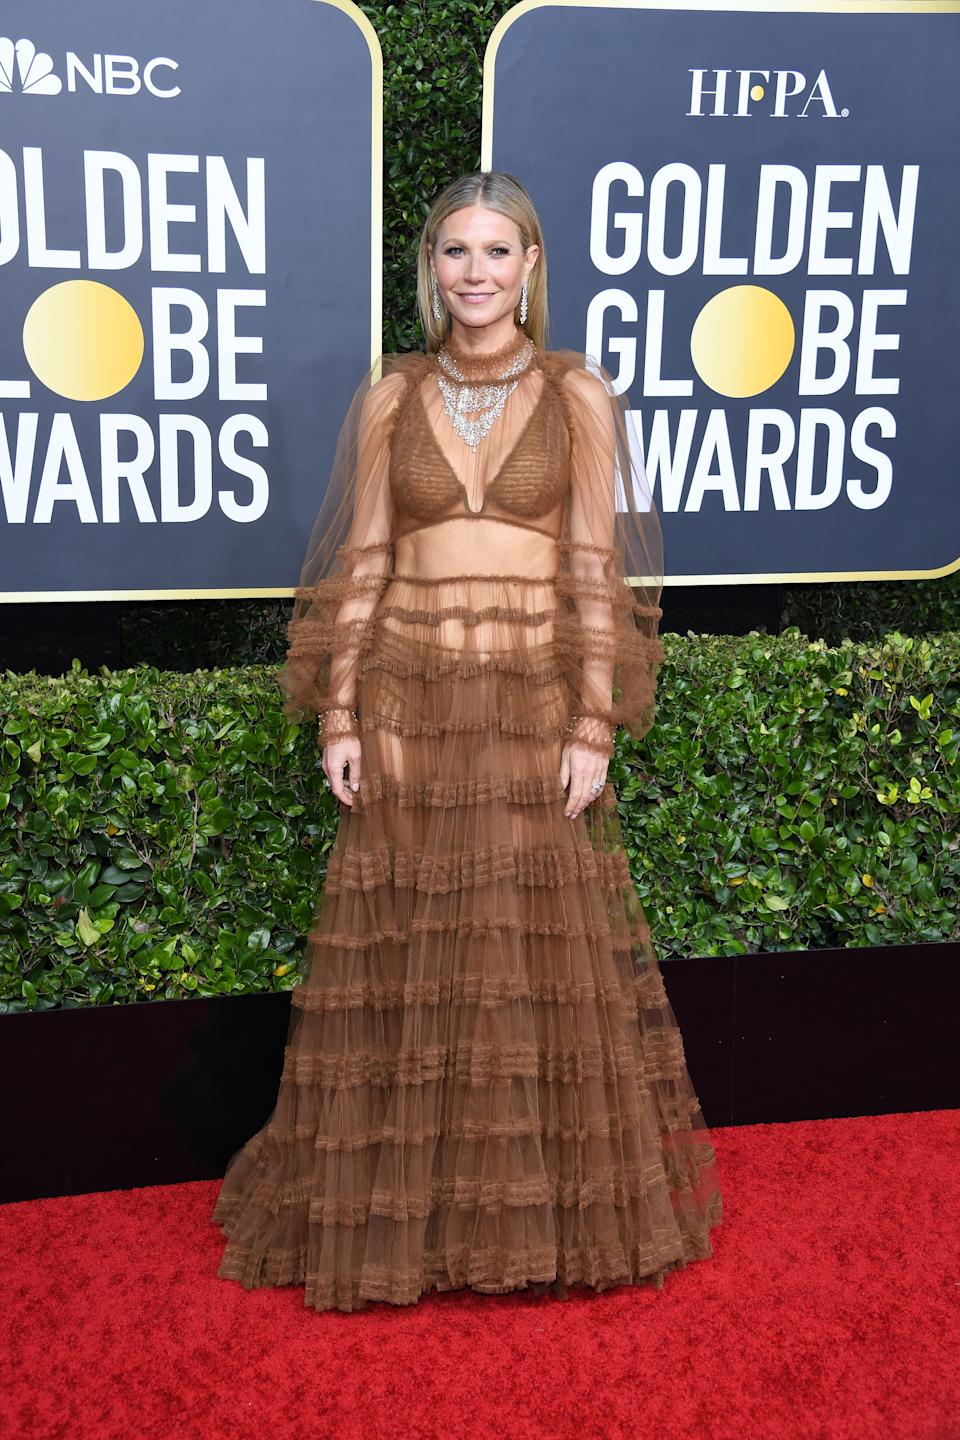 Gwyneth Paltrow wore a semi-sheer dress, showcasing her enviable abs, to the Golden Globes 2020 [Photo: Getty]